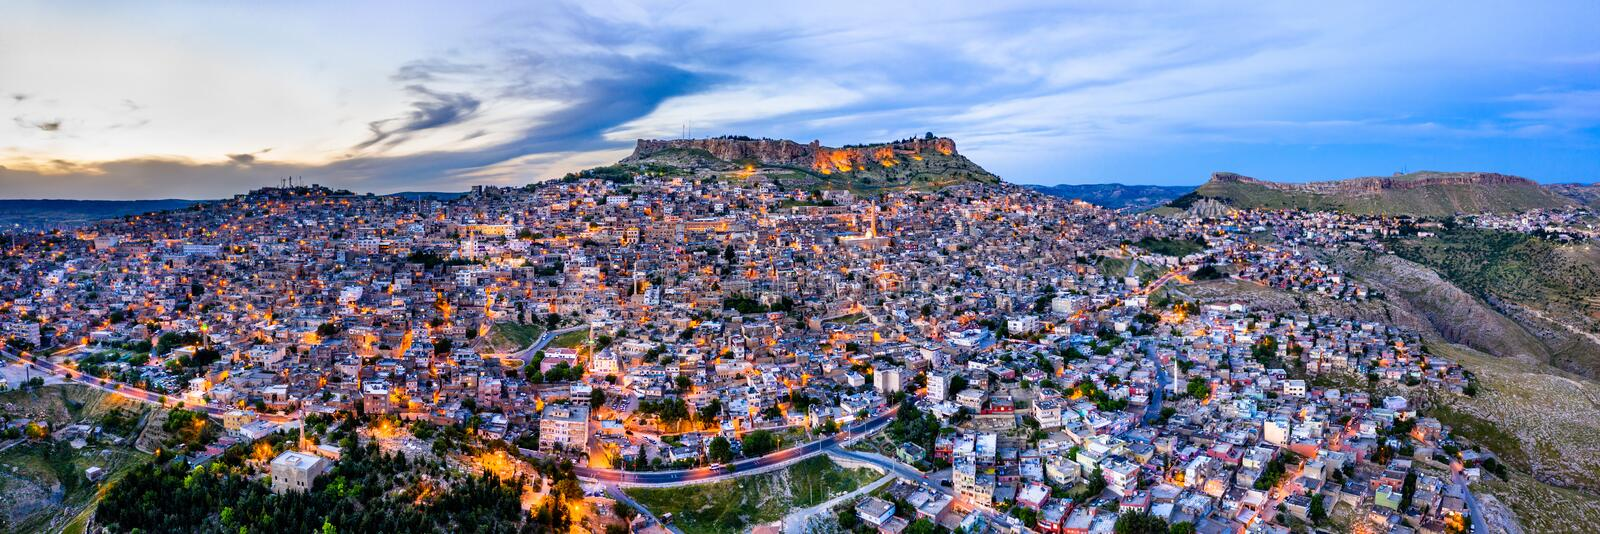 The old city of Mardin at sunset, Turkey stock photography